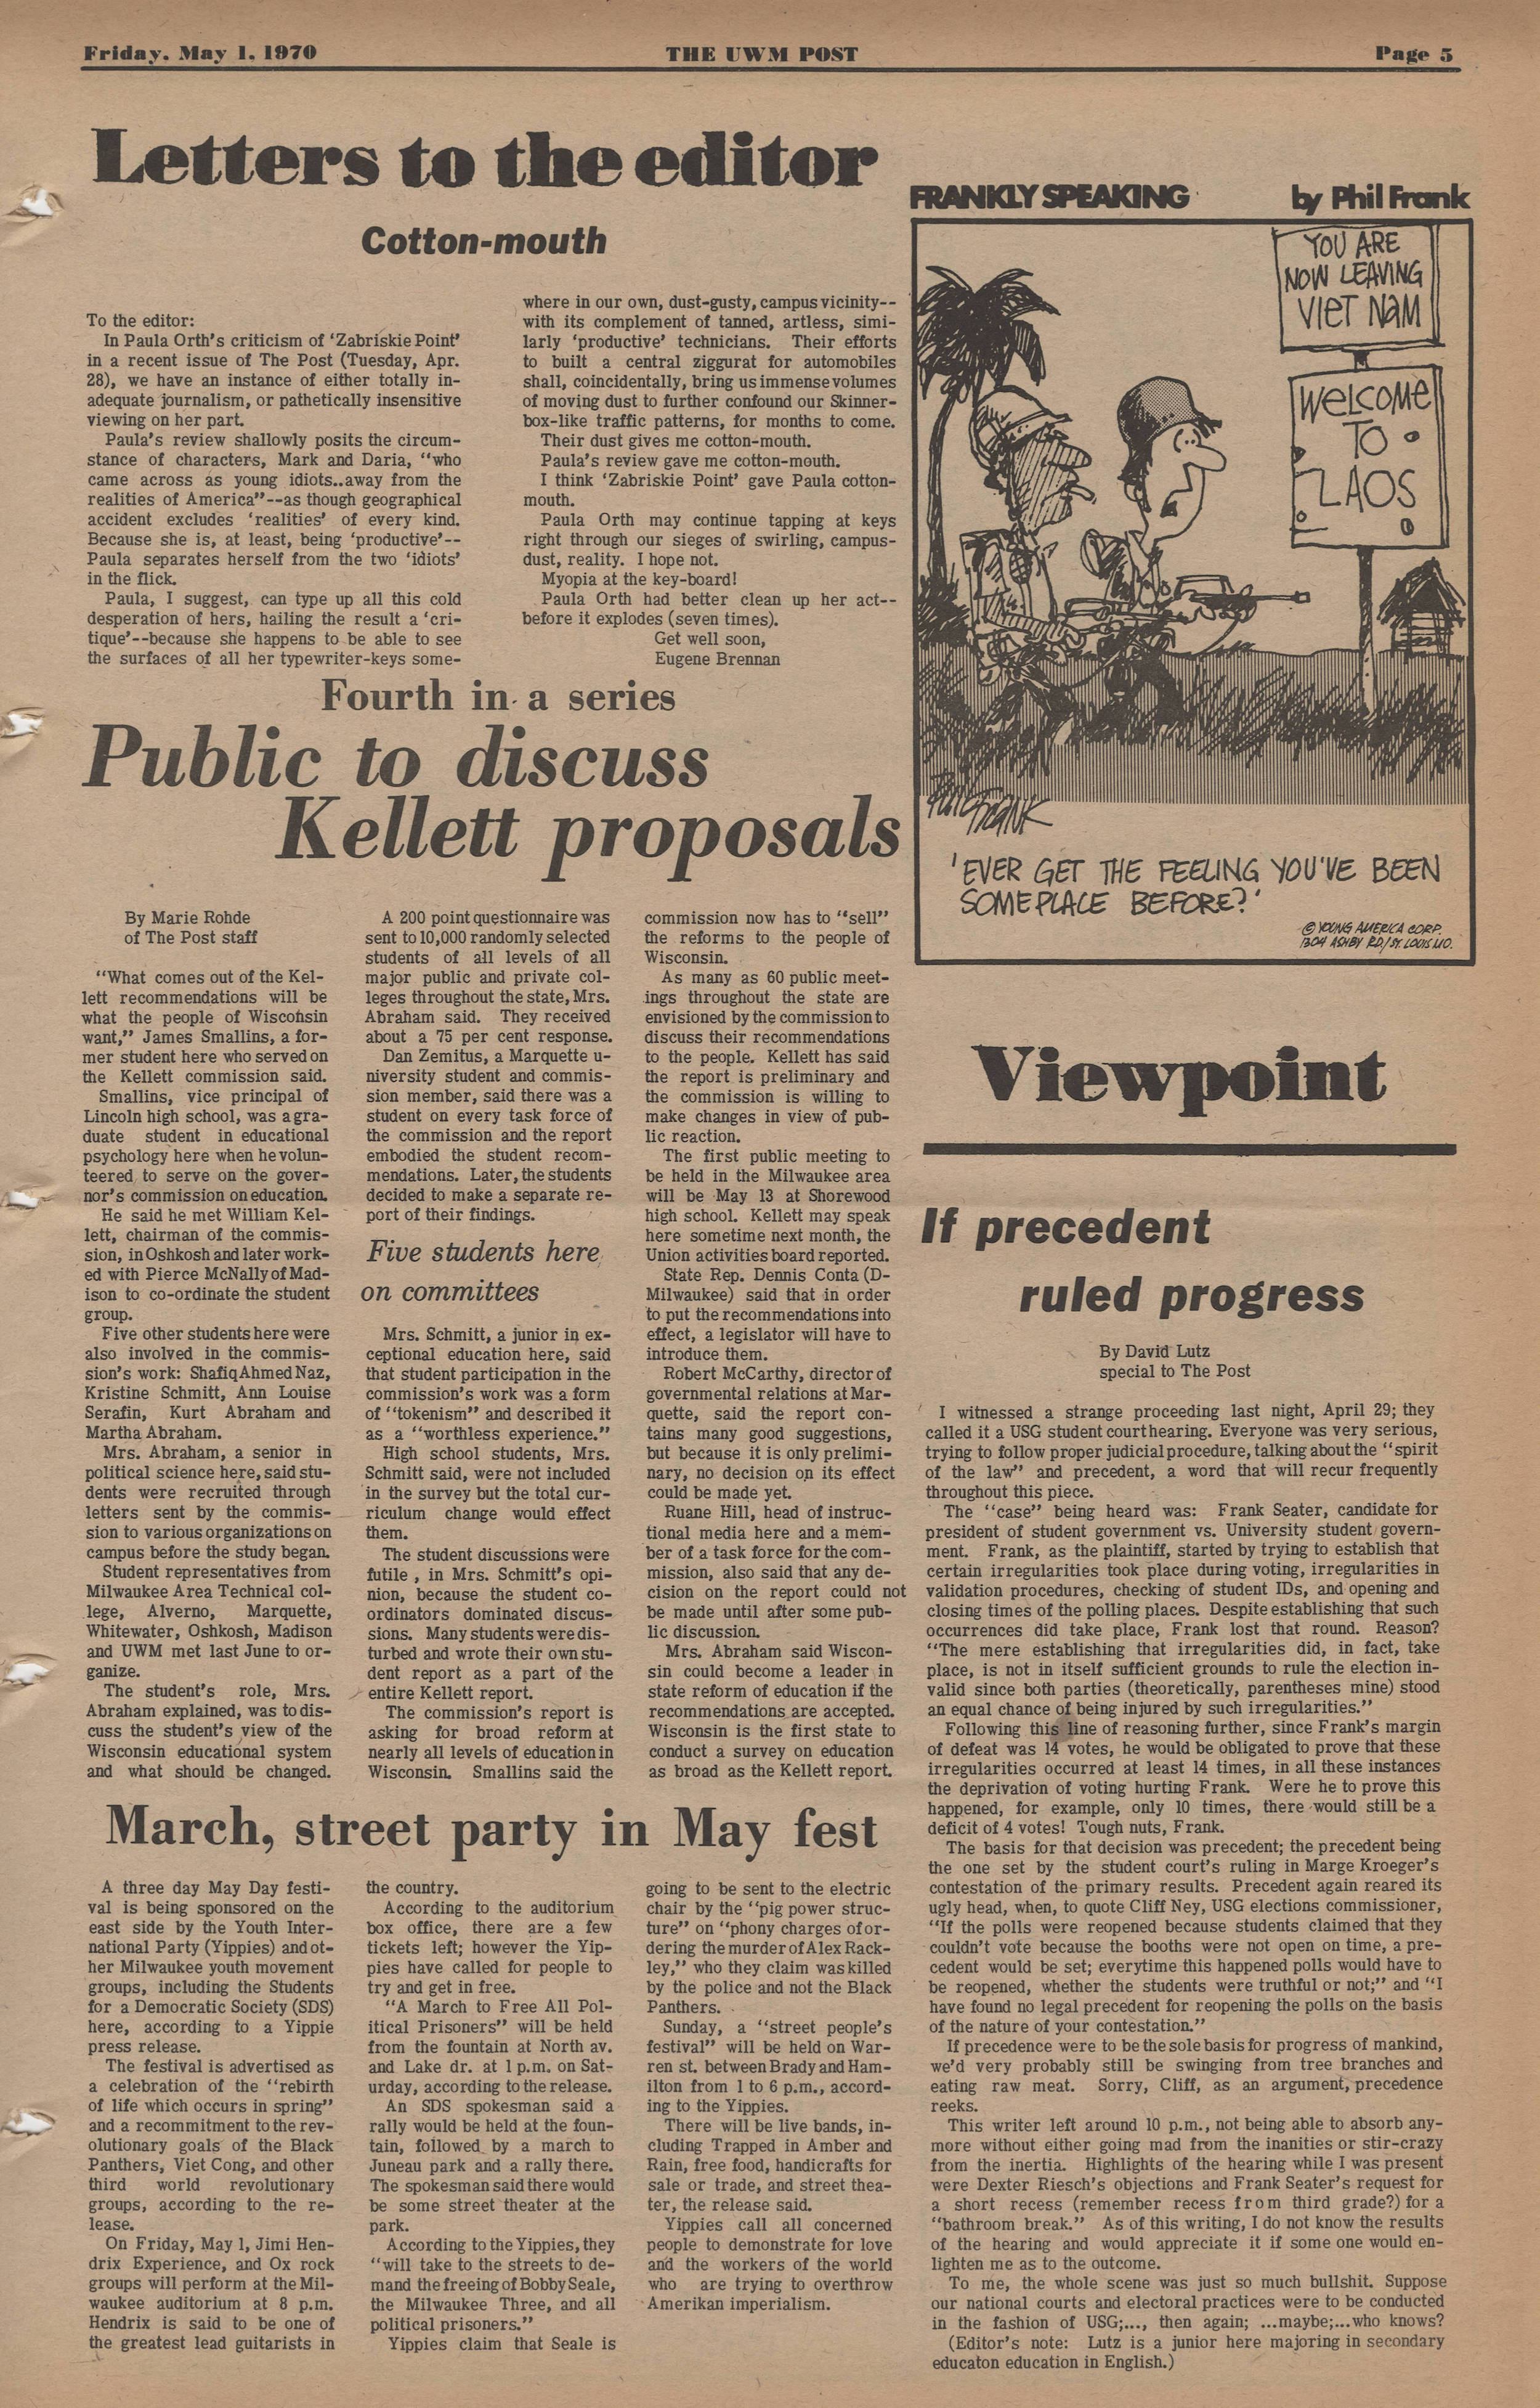 <table class=&quot;lightbox&quot;><tr><td colspan=2 class=&quot;lightbox-title&quot;>Counterculture May Fest</td></tr><tr><td colspan=2 class=&quot;lightbox-caption&quot;>This issue of the UWM Post from 1970 features an announcement for an upcoming march and festival  in support of &quot;workers of the world who are trying to overthrow Amerikan imperialism.&quot; </td></tr><tr><td colspan=2 class=&quot;lightbox-spacer&quot;></td></tr><tr class=&quot;lightbox-detail&quot;><td class=&quot;cell-title&quot;>Source: </td><td class=&quot;cell-value&quot;>From the UWM Post Newspaper 1956-2012 Collection, Archives. University of Wisconsin-Milwaukee Libraries.<br /><a href=&quot;https://collections.lib.uwm.edu/digital/collection/uwmpost/id/1565/rec/1  &quot; target=&quot;_blank&quot;>University of Wisconsin-Milwaukee Libraries</a></td></tr><tr class=&quot;filler-row&quot;><td colspan=2>&nbsp;</td></tr></table>